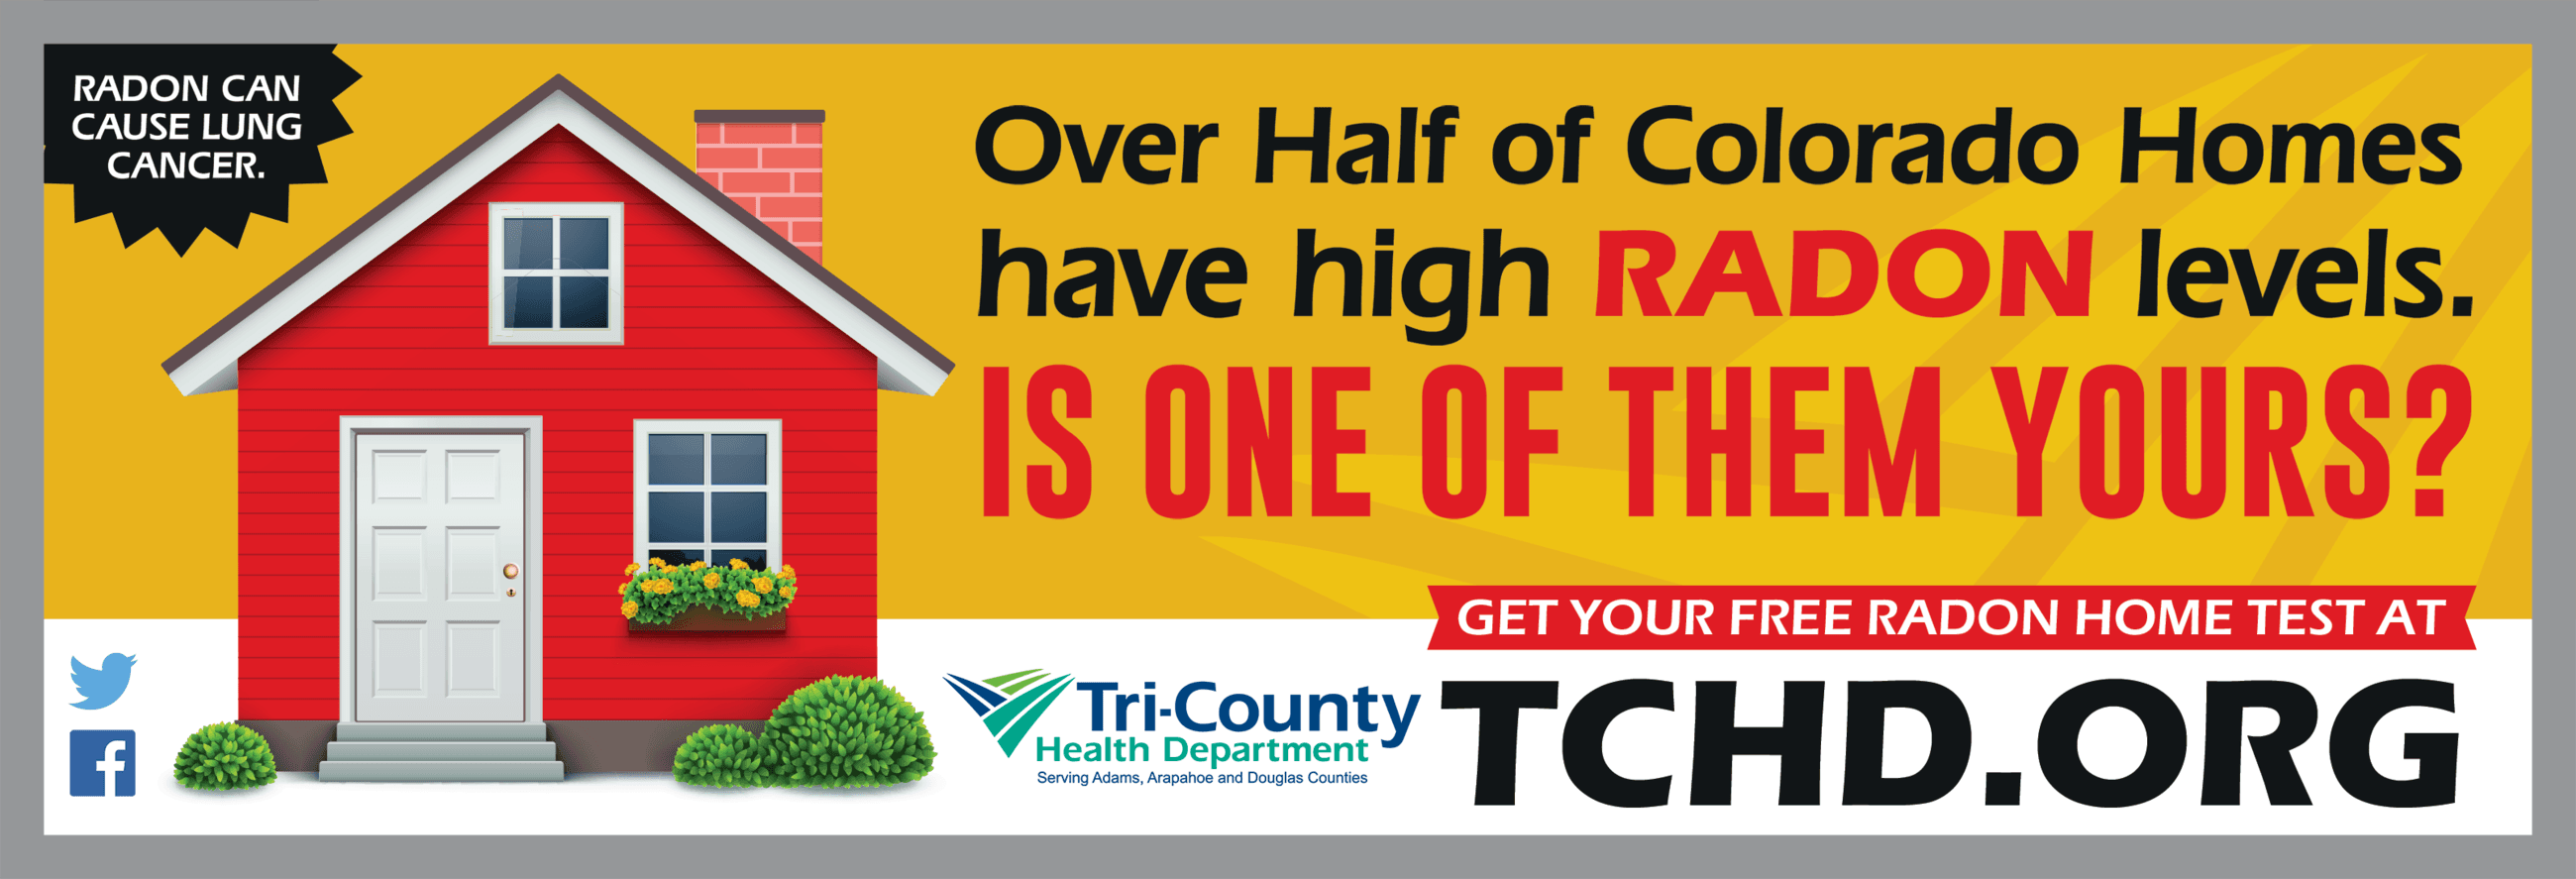 Tri county health department official website official website is your home safe from radon xflitez Gallery